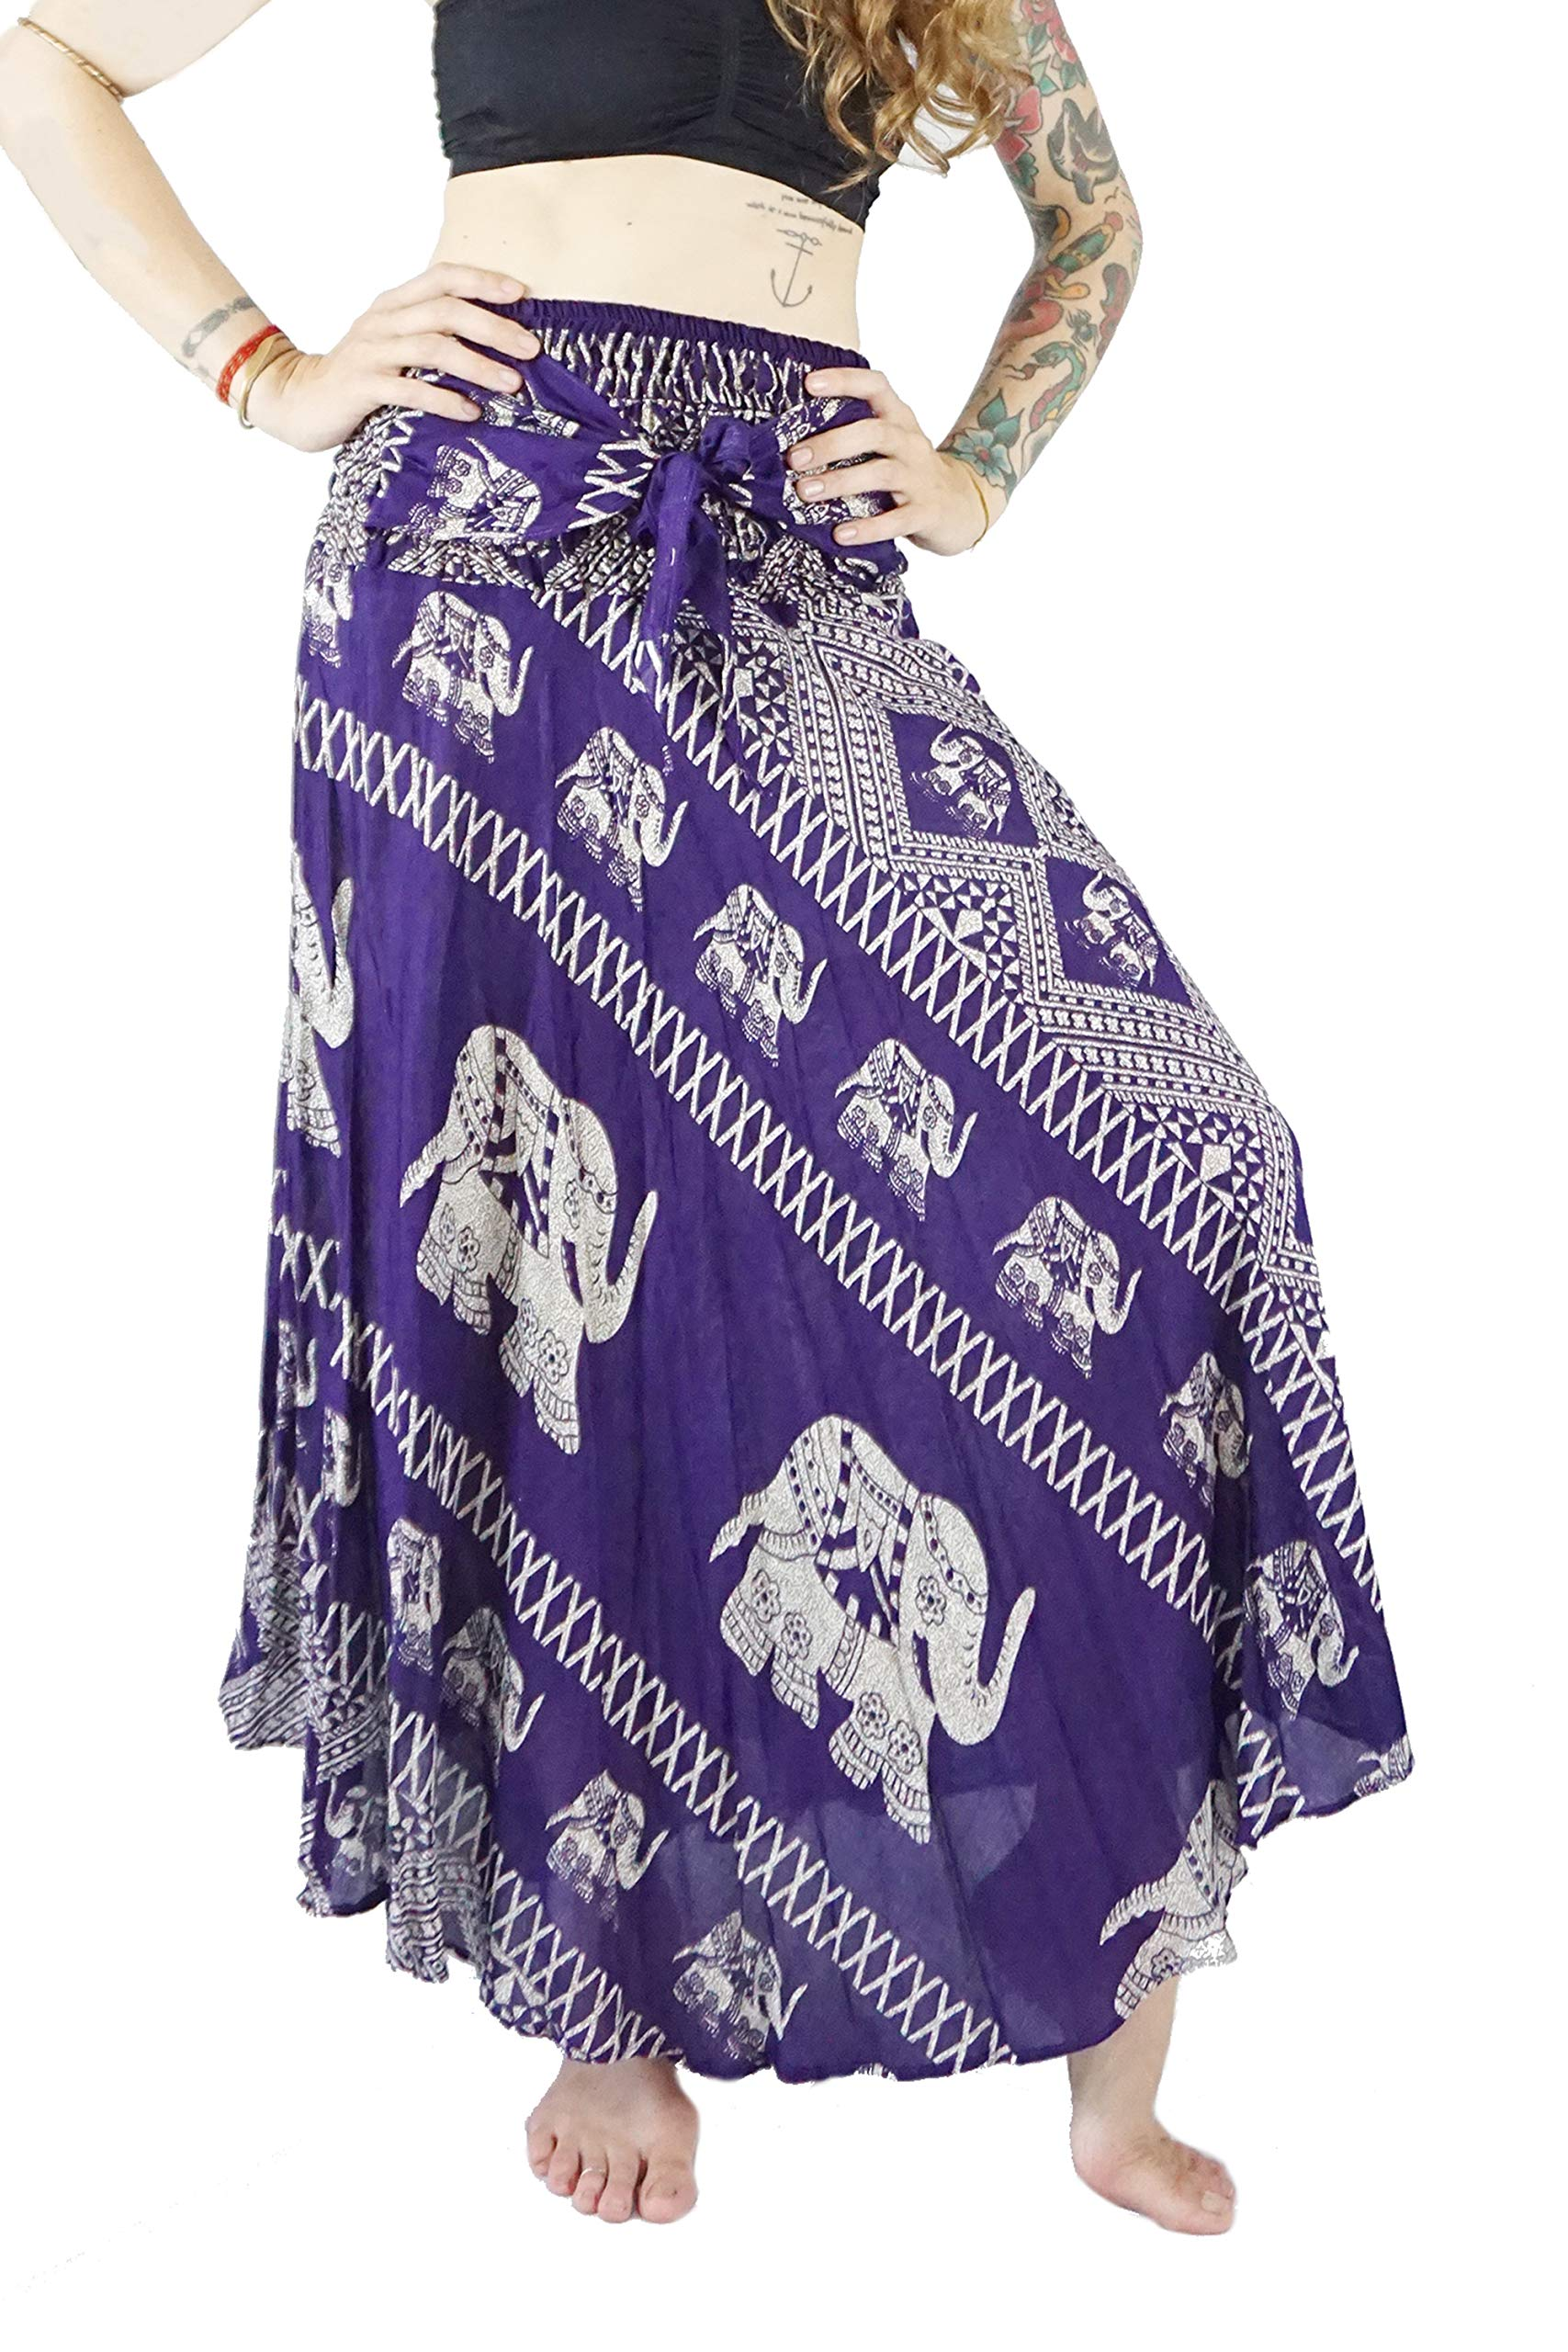 Boho Vib Women's Long Bohemian Summer Skirt Dress Plus Size Elephant 1 Purple